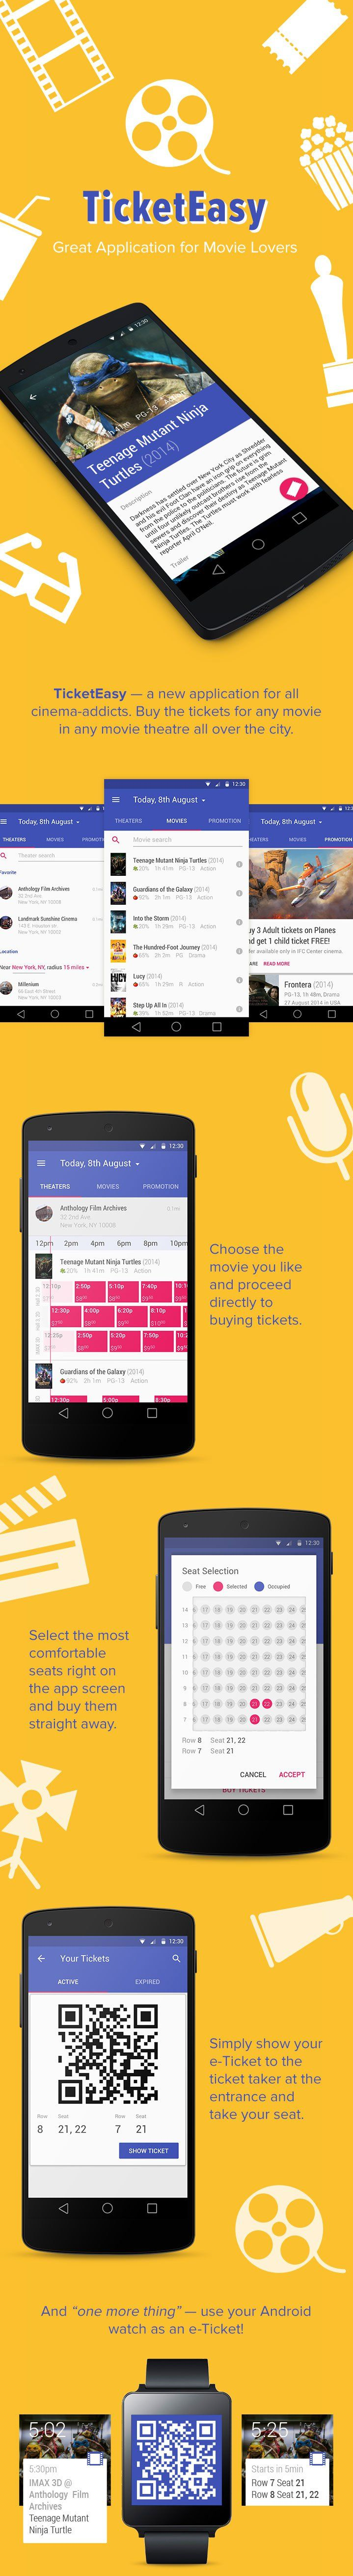 TicketEasy Android App ticket movie listing material design lollipop smartphone